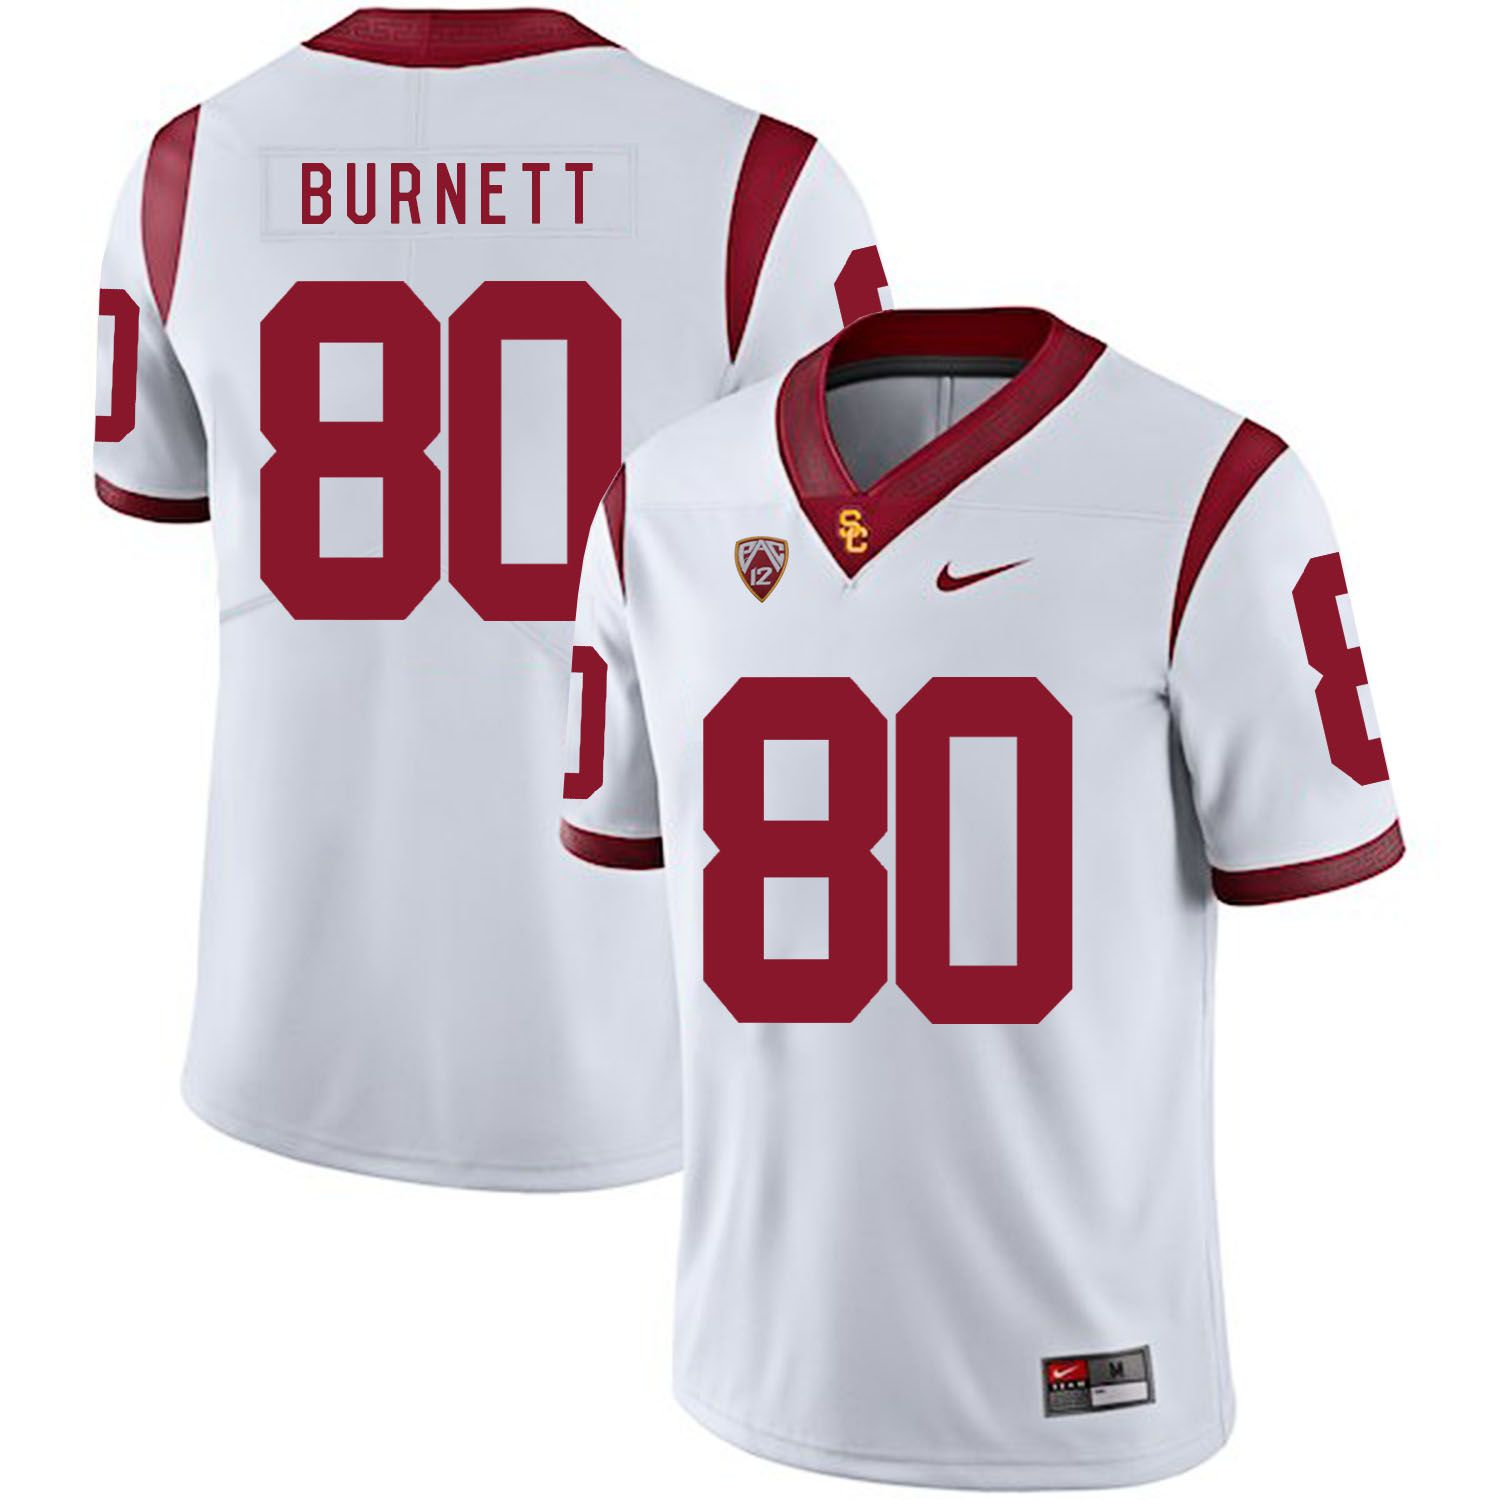 Men USC Trojans 80 Burnett White Customized NCAA Jerseys